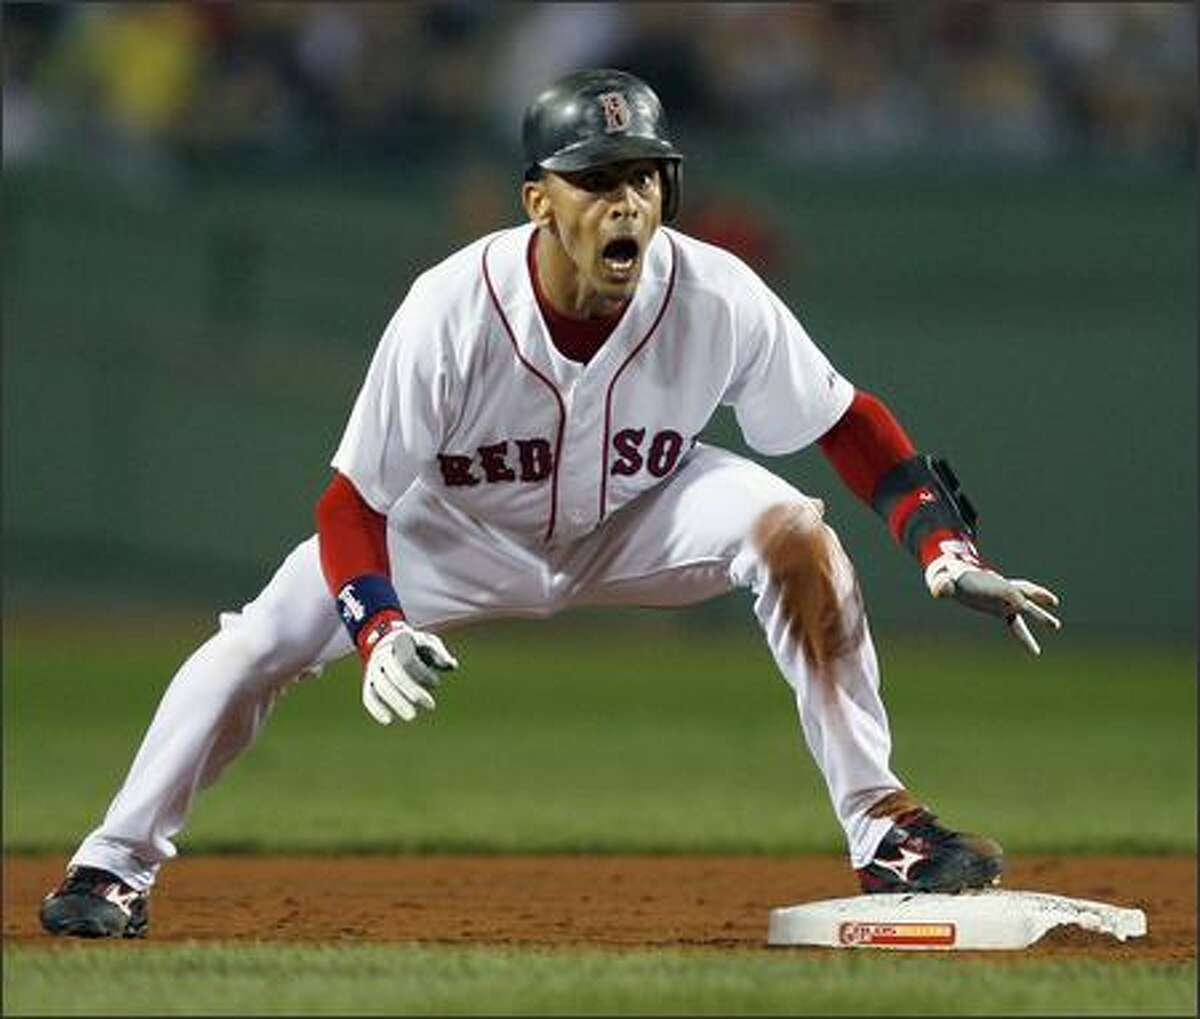 Julio Lugo #23 of the Boston Red Sox reacts after he is called out after stealing second base in the second inning against the Los Angeles Angels during the American League Division Series on October 3, 2007 at Fenway Park in Boston, Massachusetts. (Photo by Jim Rogash/Getty Images)